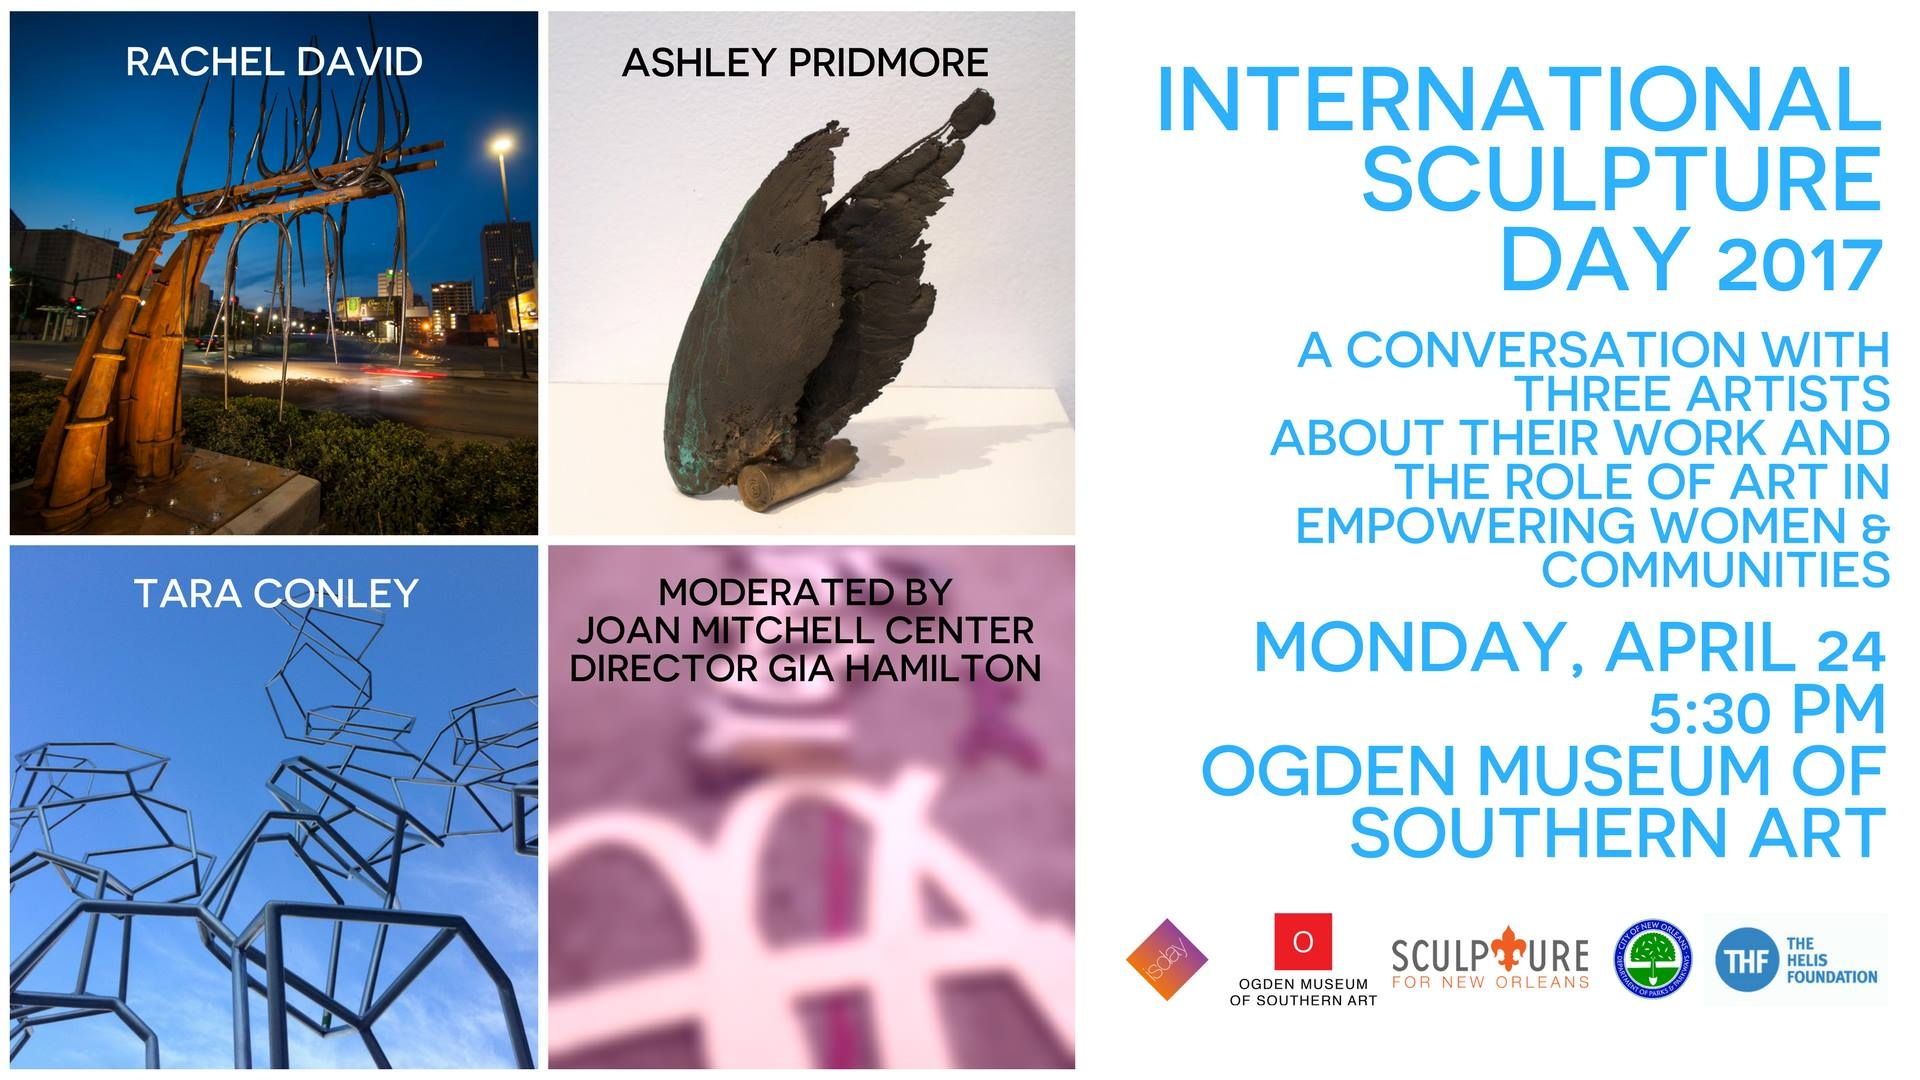 International Sculpture Day